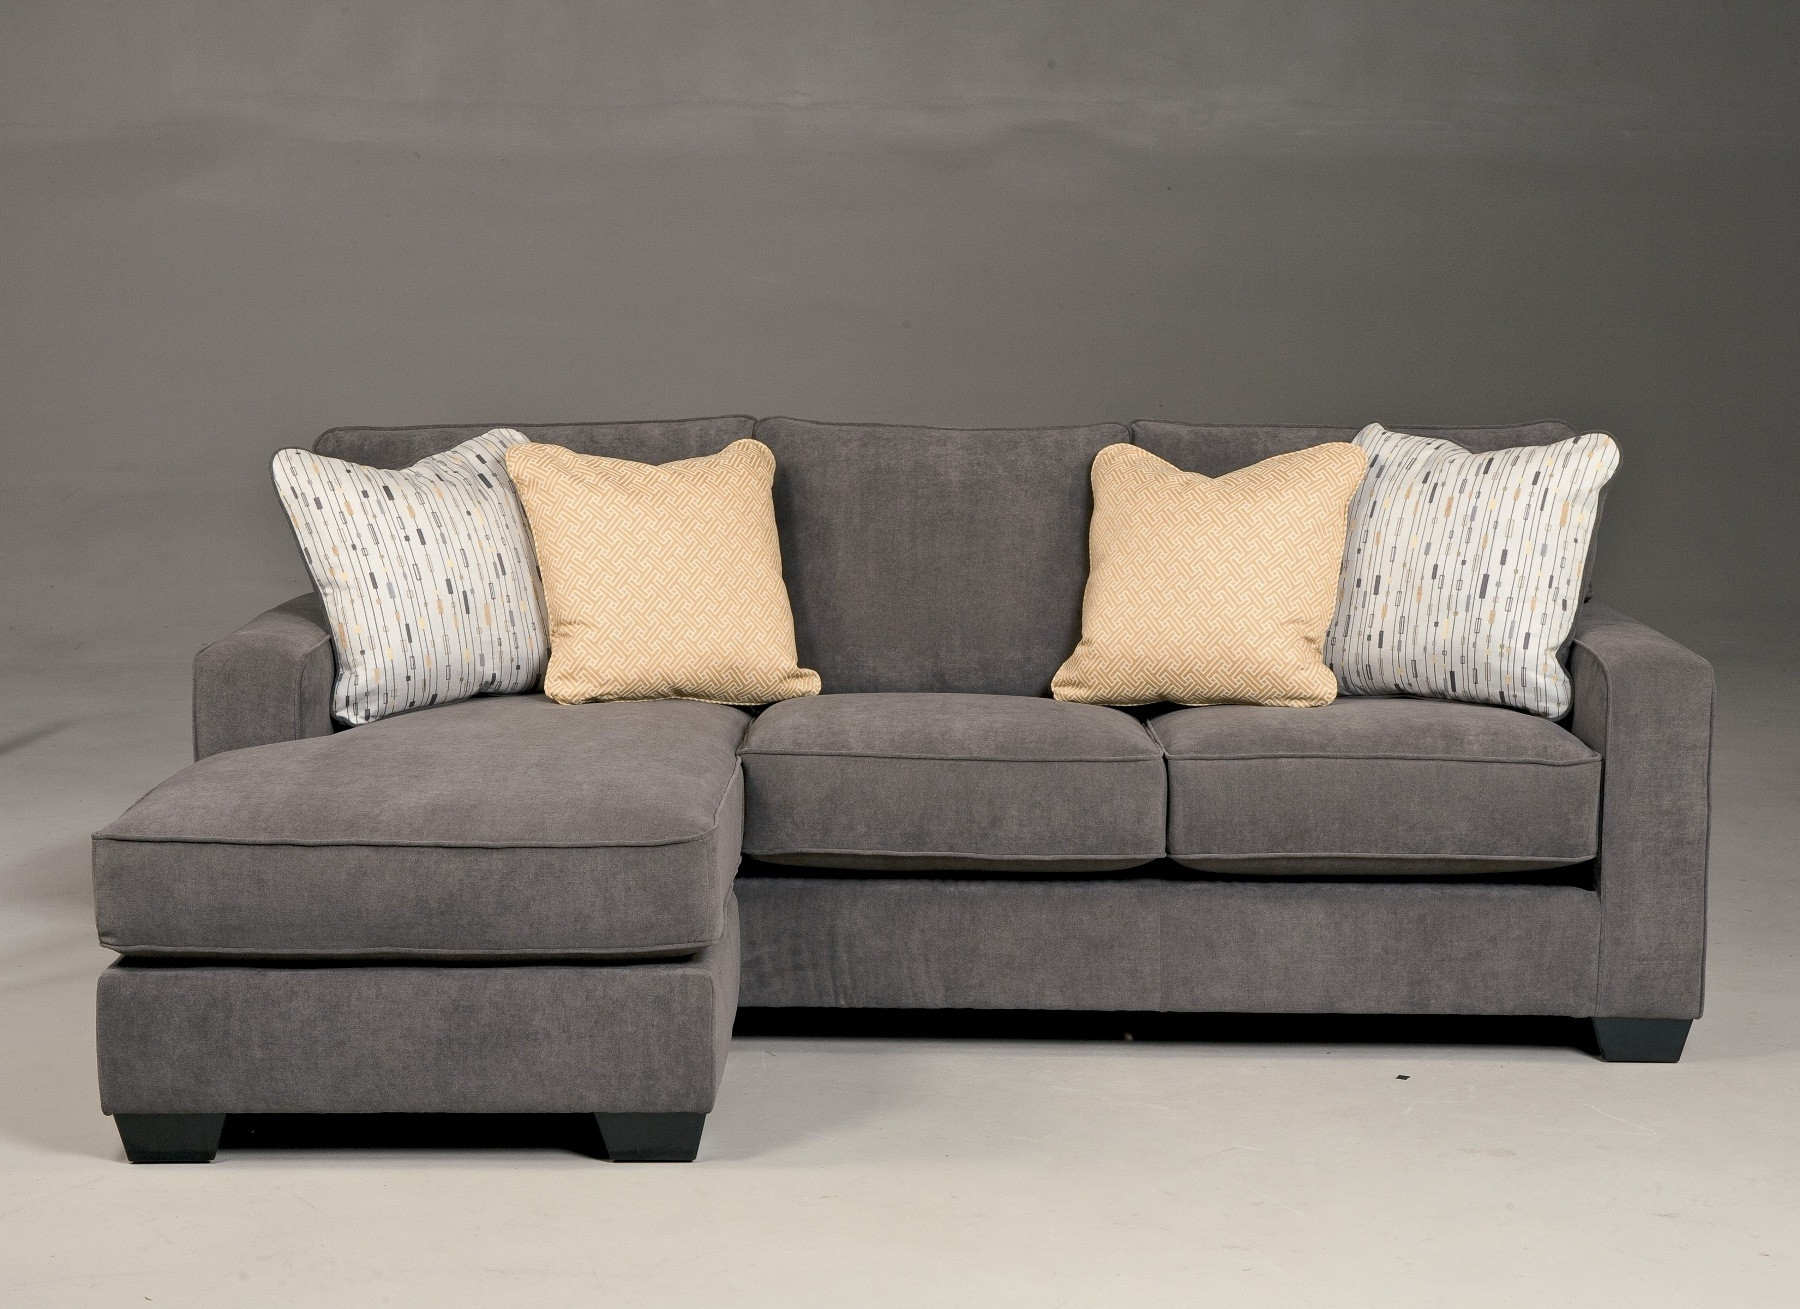 Simply Beautiful, Earthy And Plush With Regard To Widely Used Gainesville Fl Sectional Sofas (View 14 of 15)